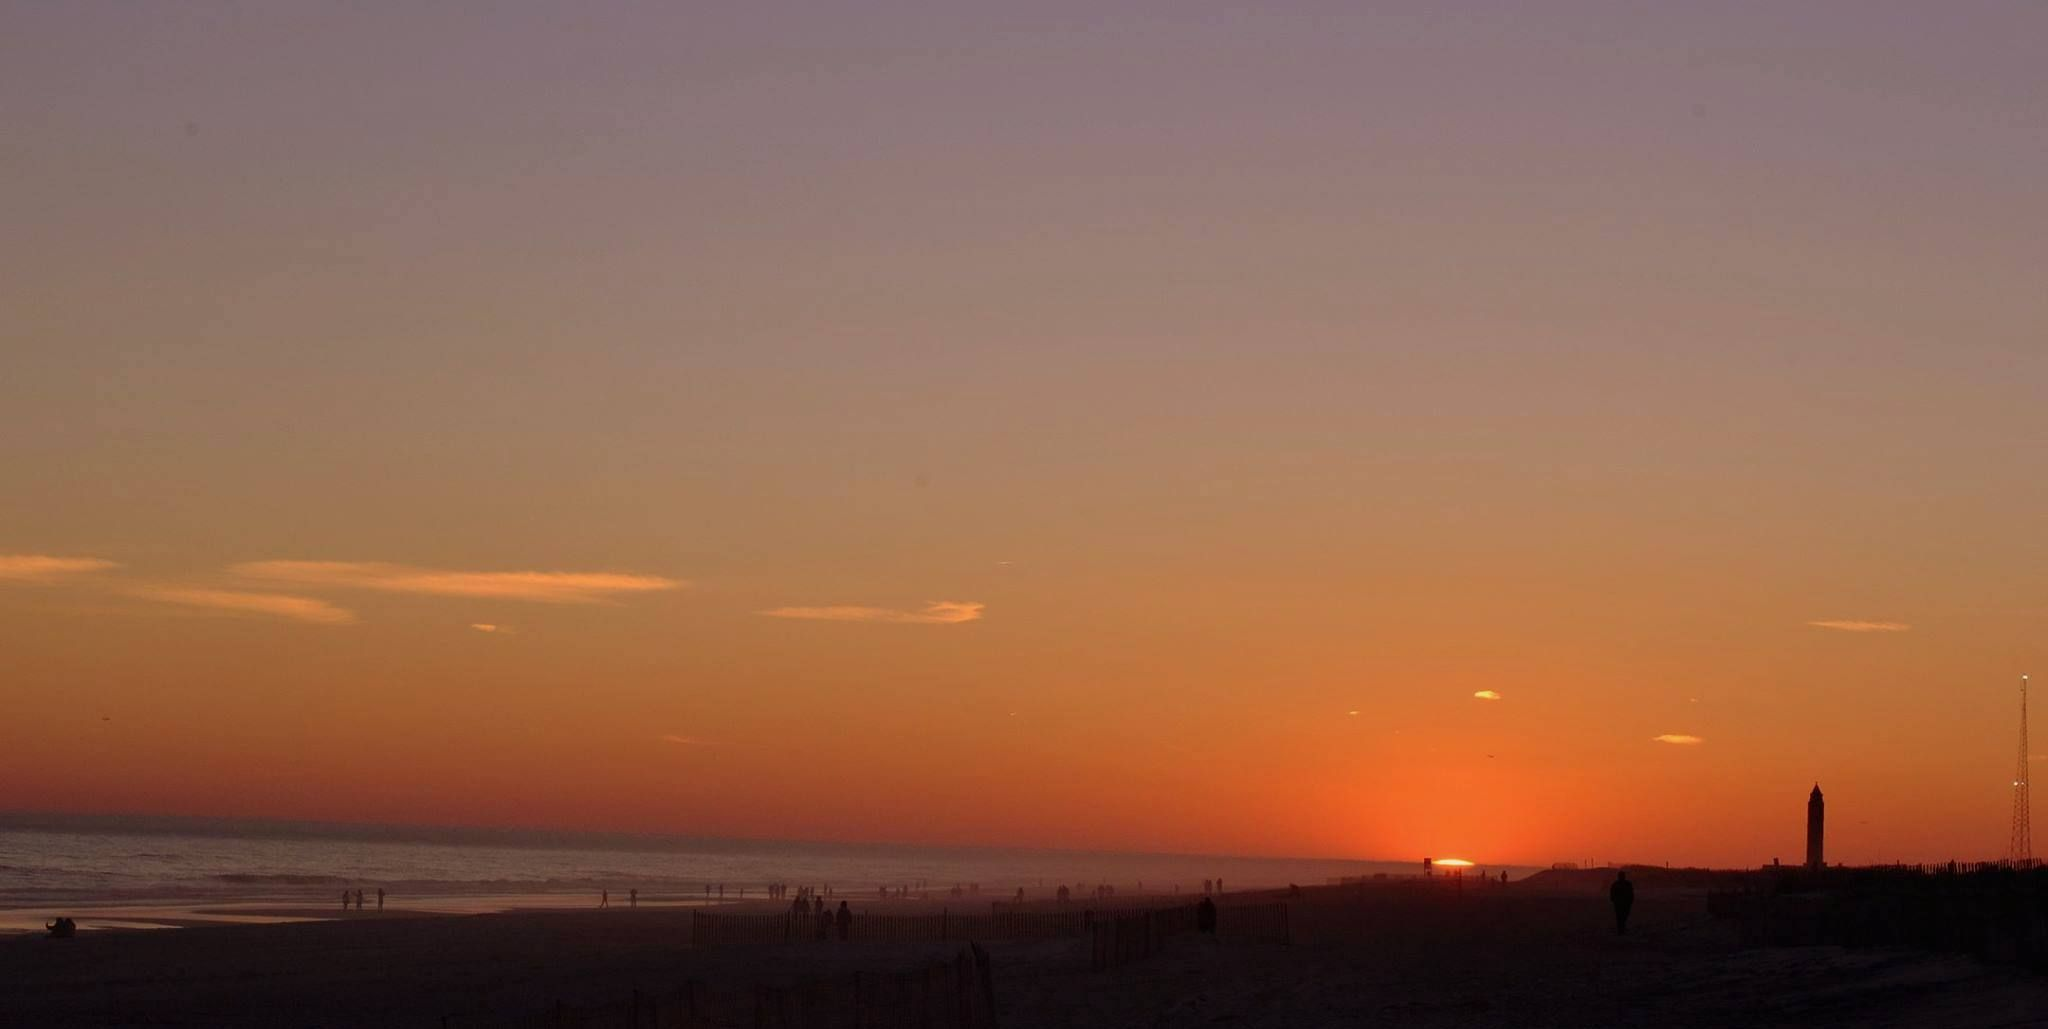 Sunday's warm weather was perfect for going to the beach. Robert Moses Field 5 sunset was beautiful!